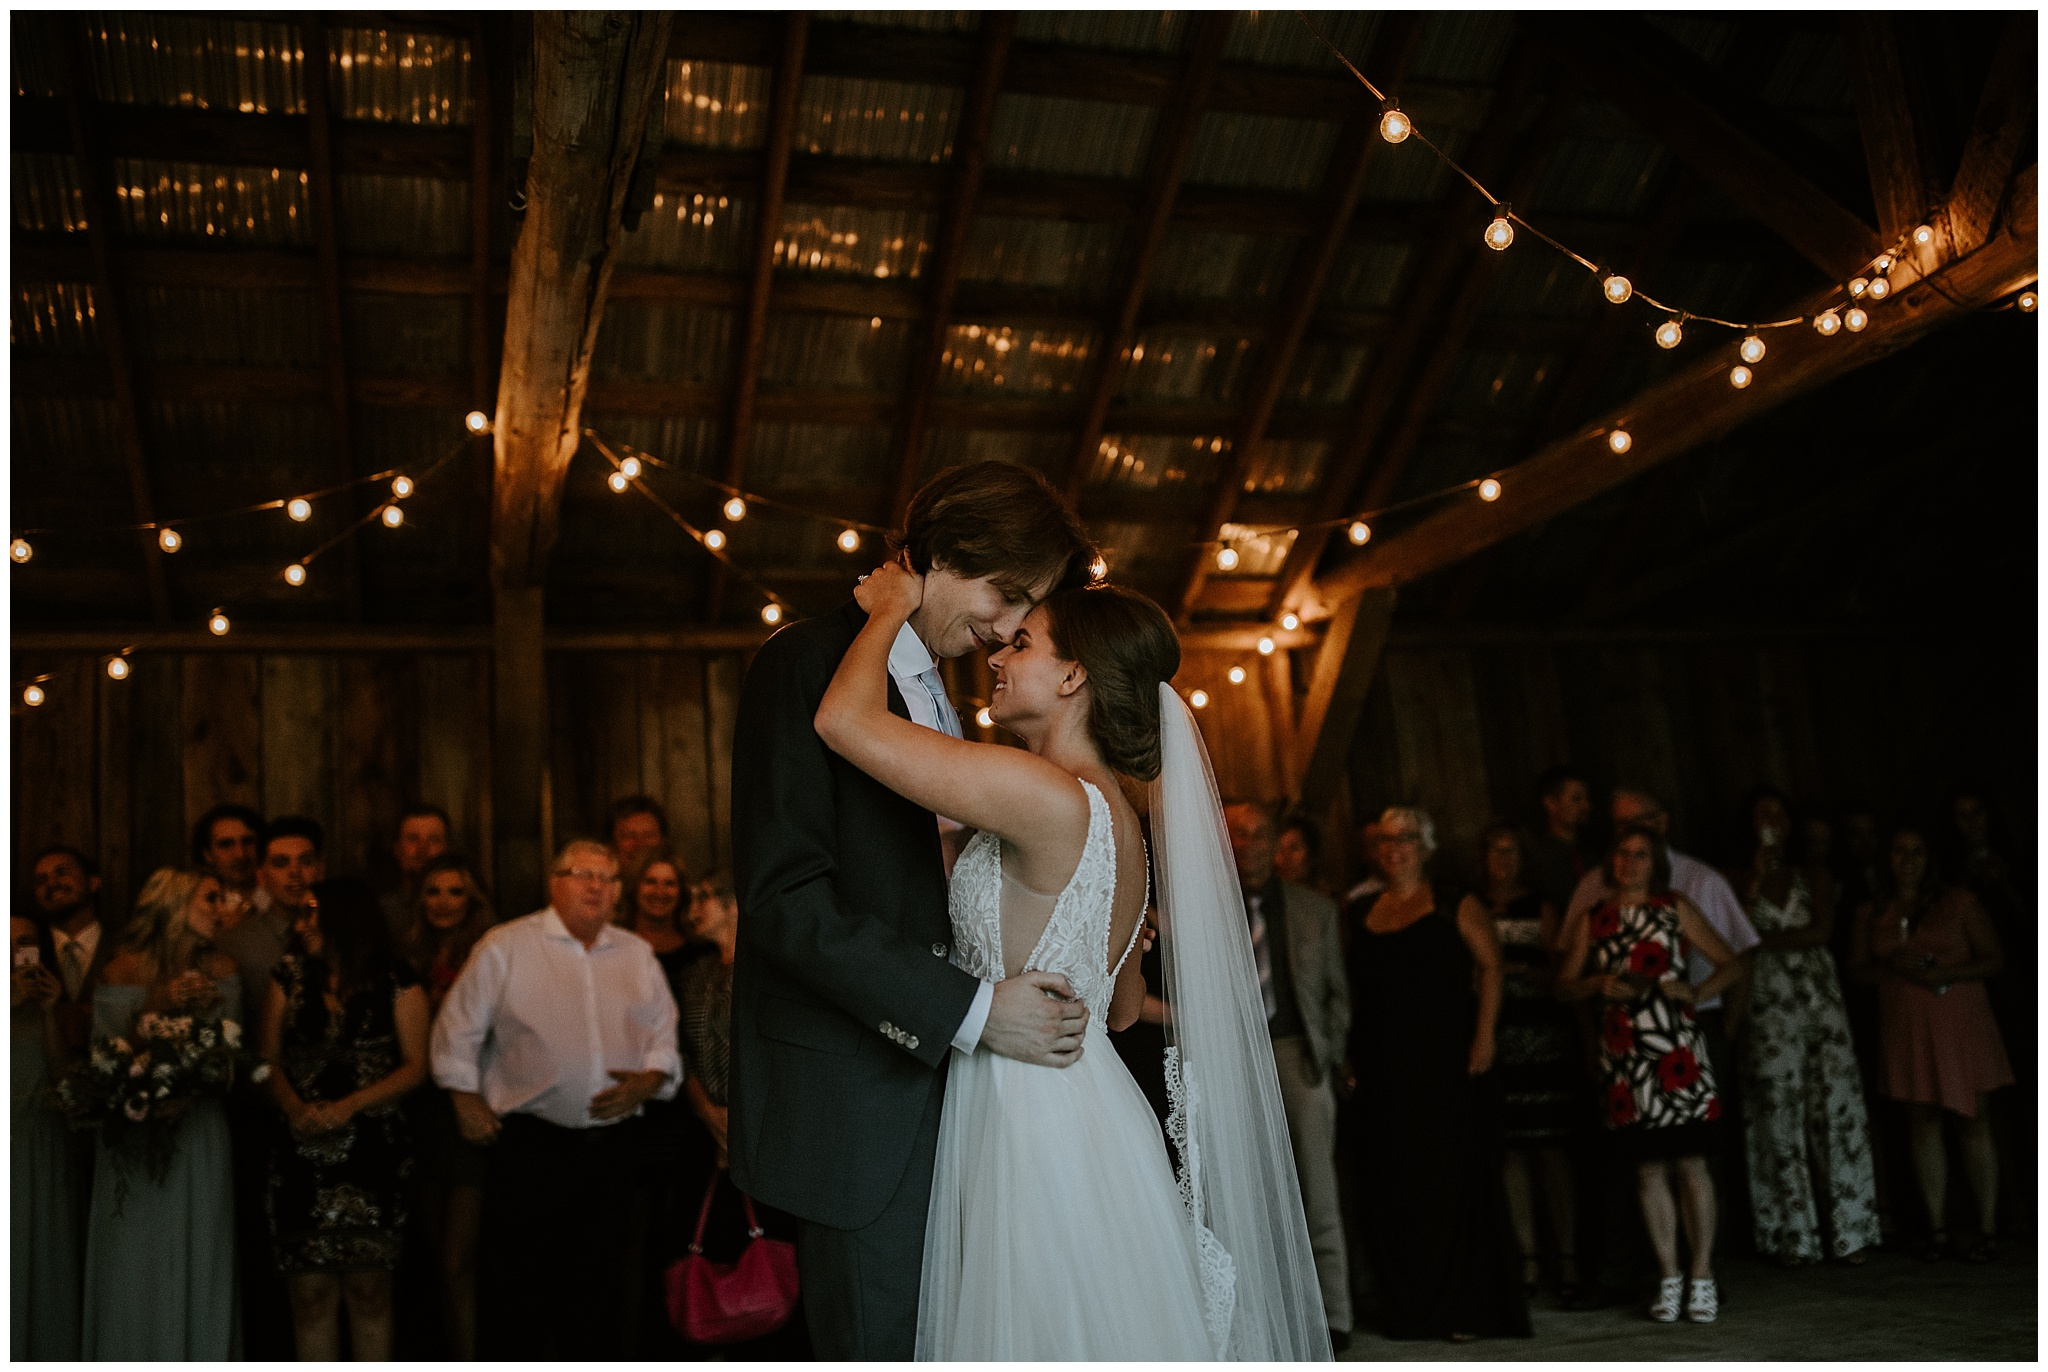 A photo of the first dance in the open barn at Estate 248 in Langley